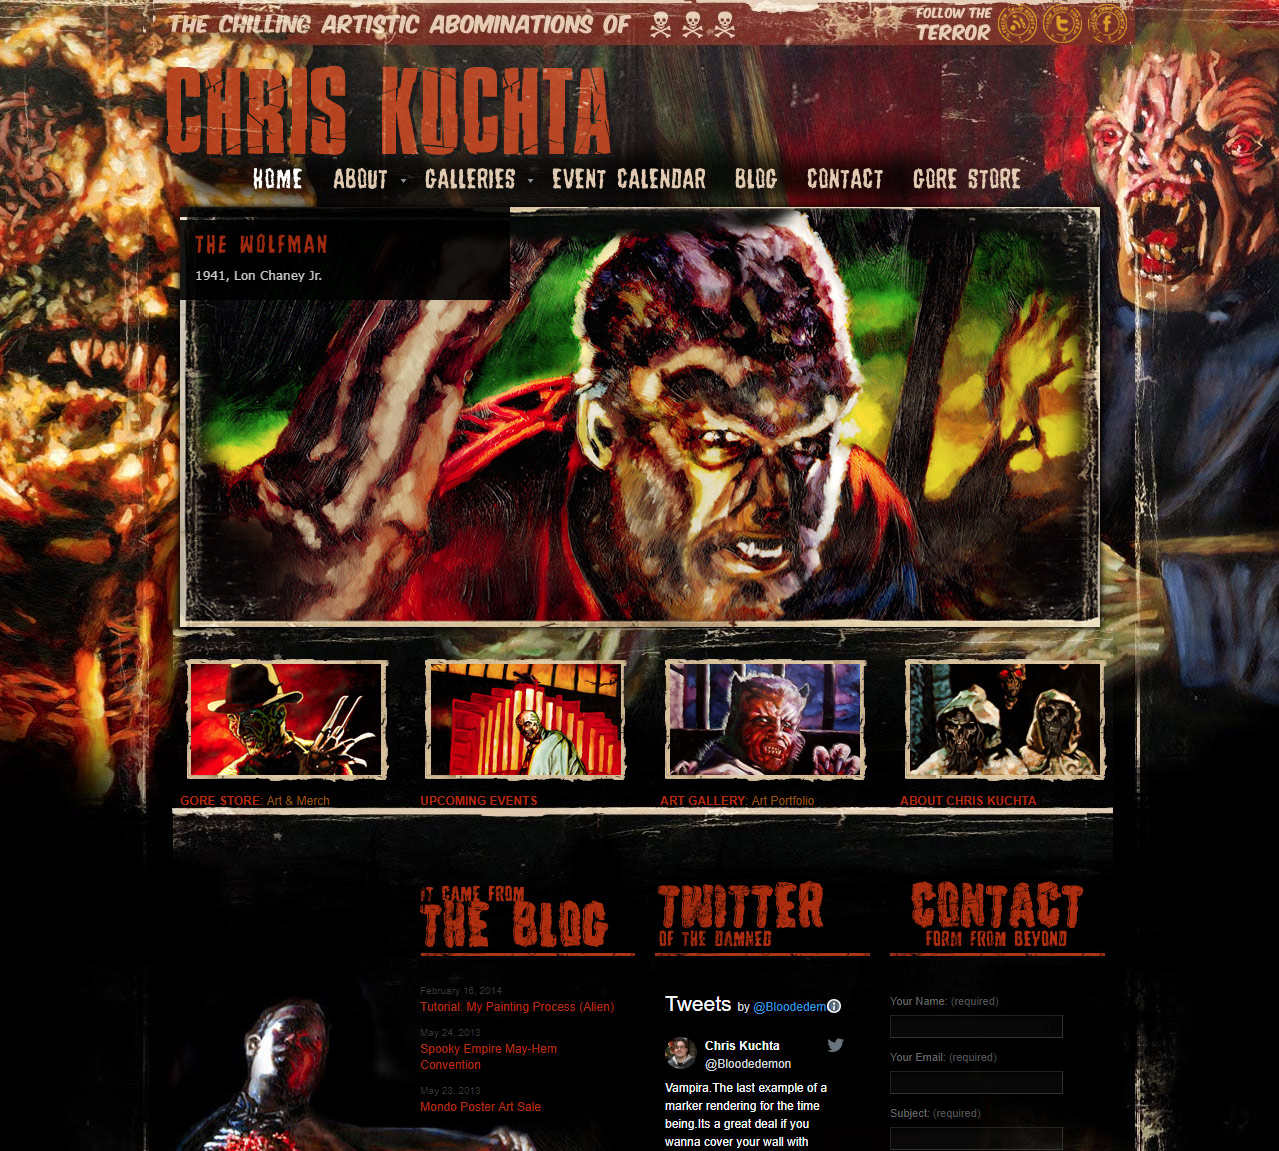 Chris Kuchta<div style='clear:both;width:100%;height:0px;'></div><span class='desc'>Web Design / Development - Produced in collaboration with Black Rat Media</span>